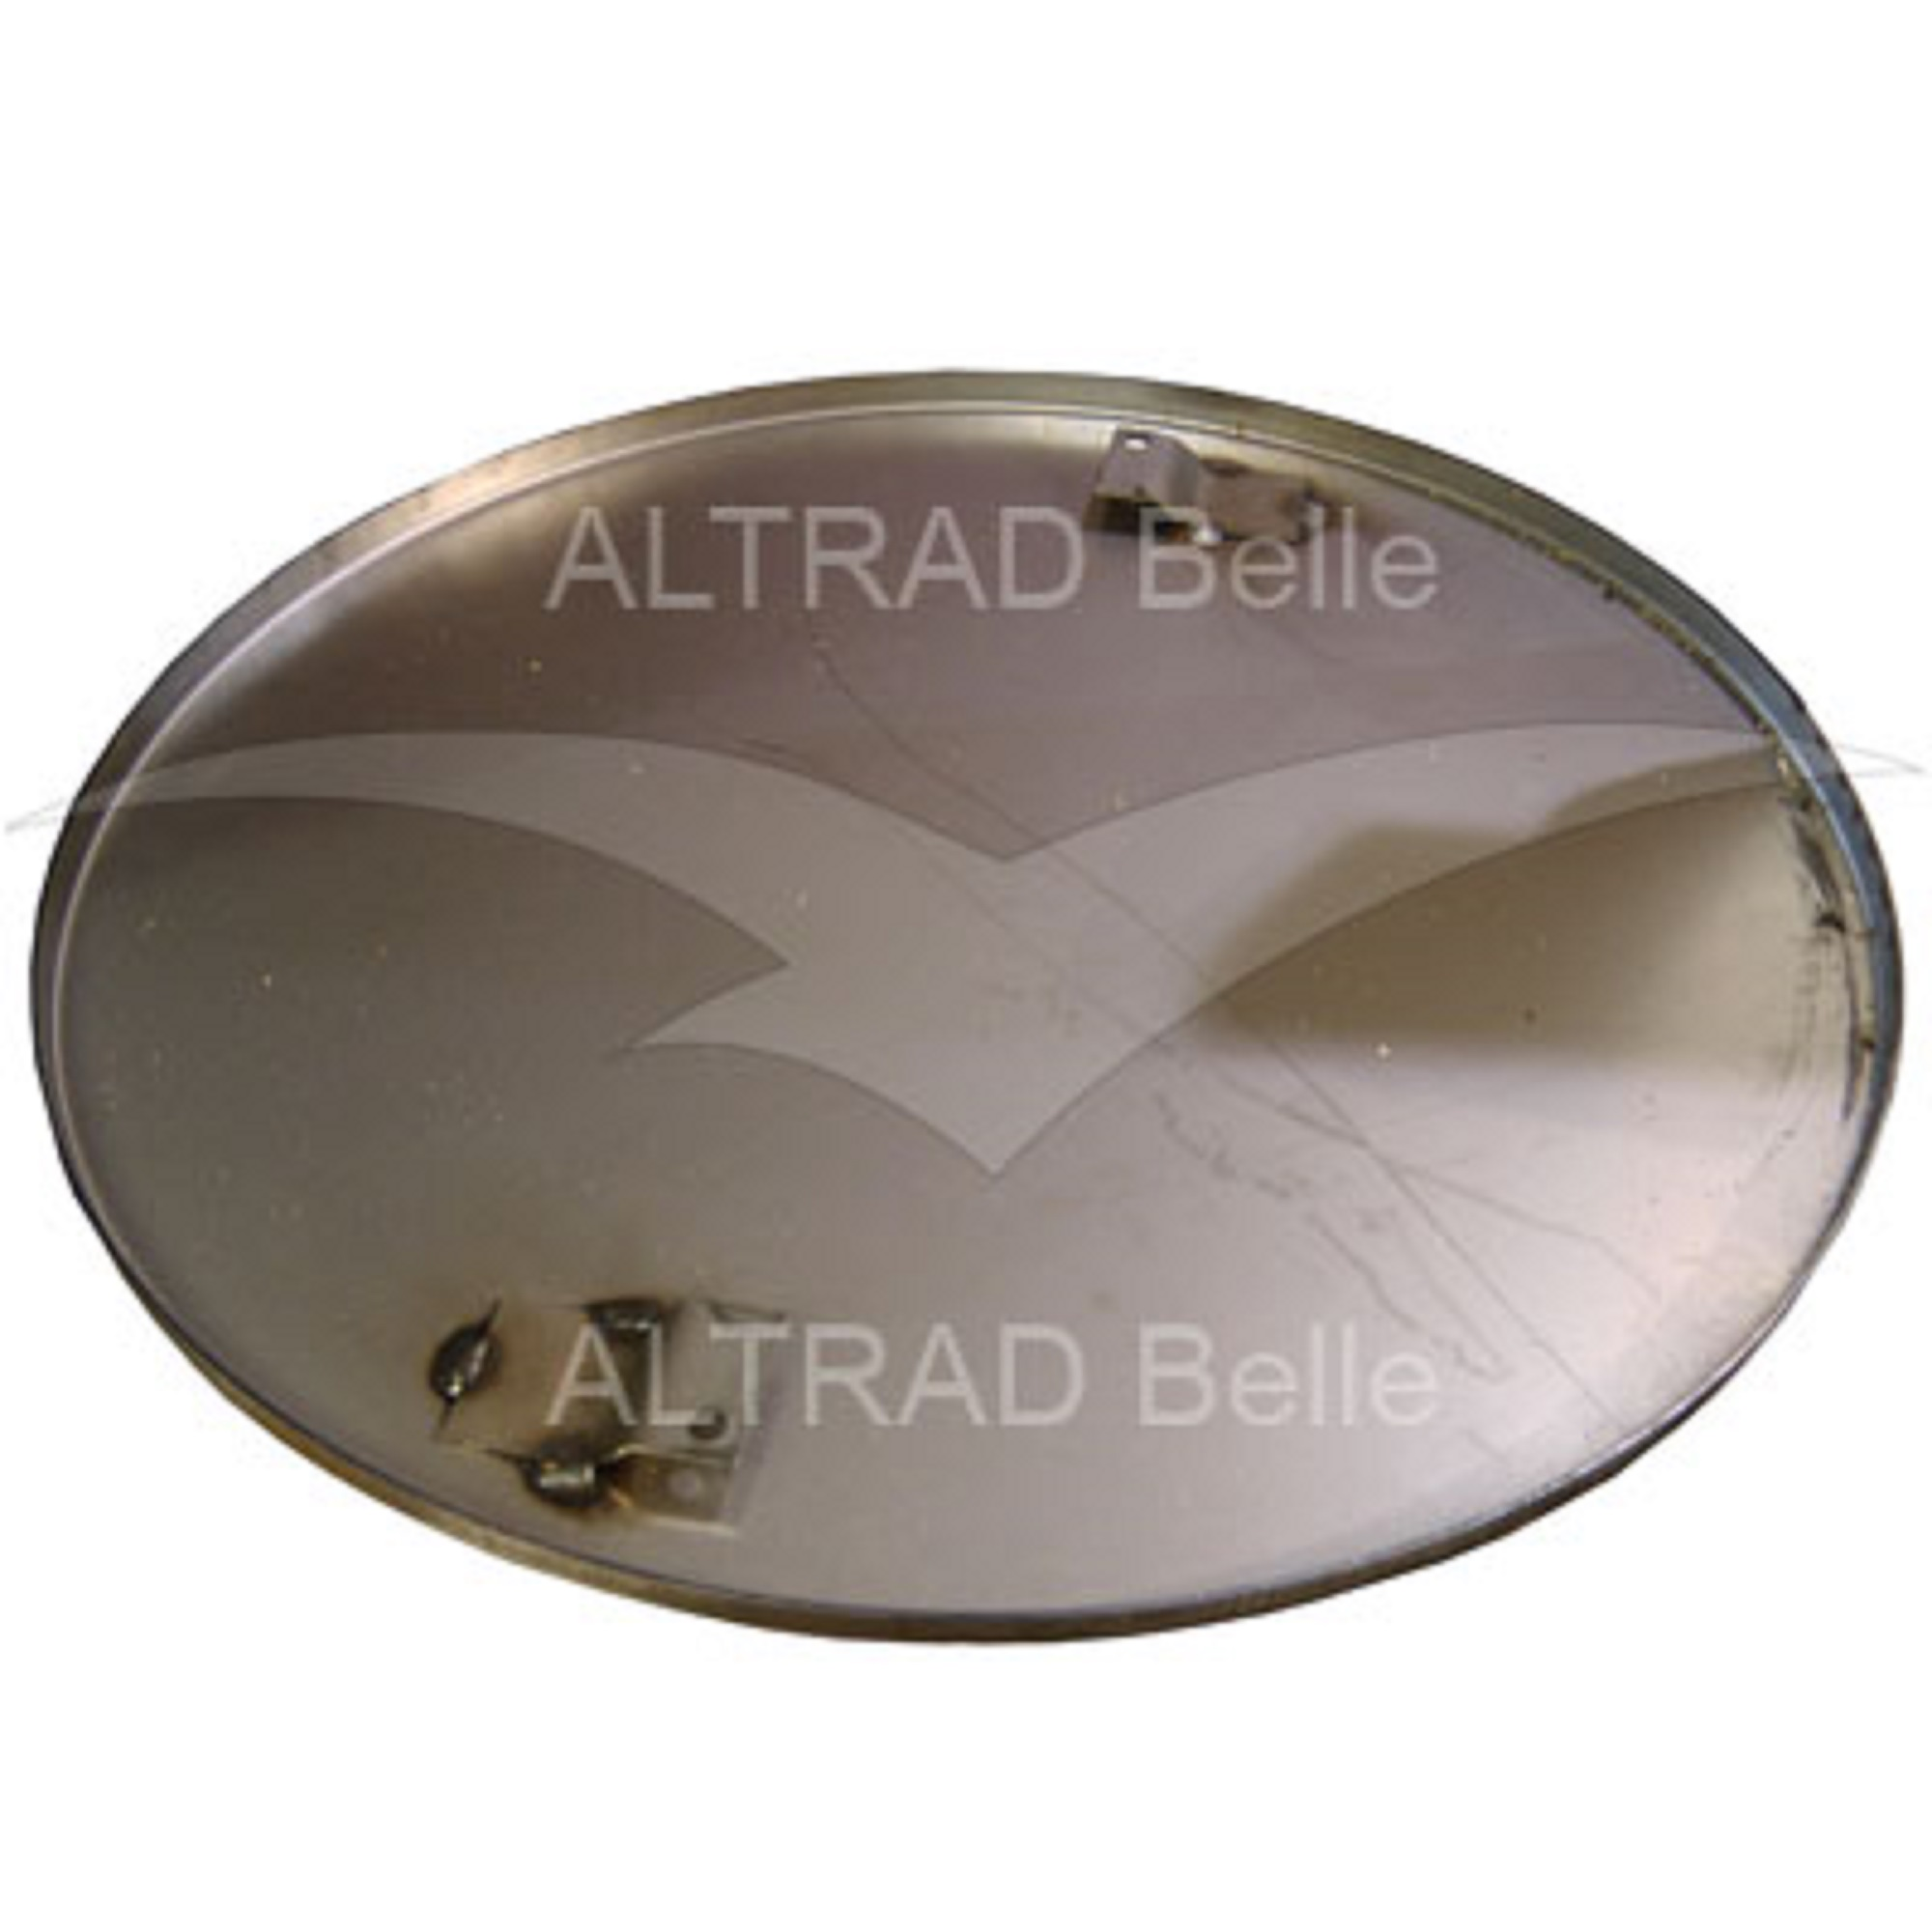 Silver circular metal float pan for the Belle PRO 600X trowel